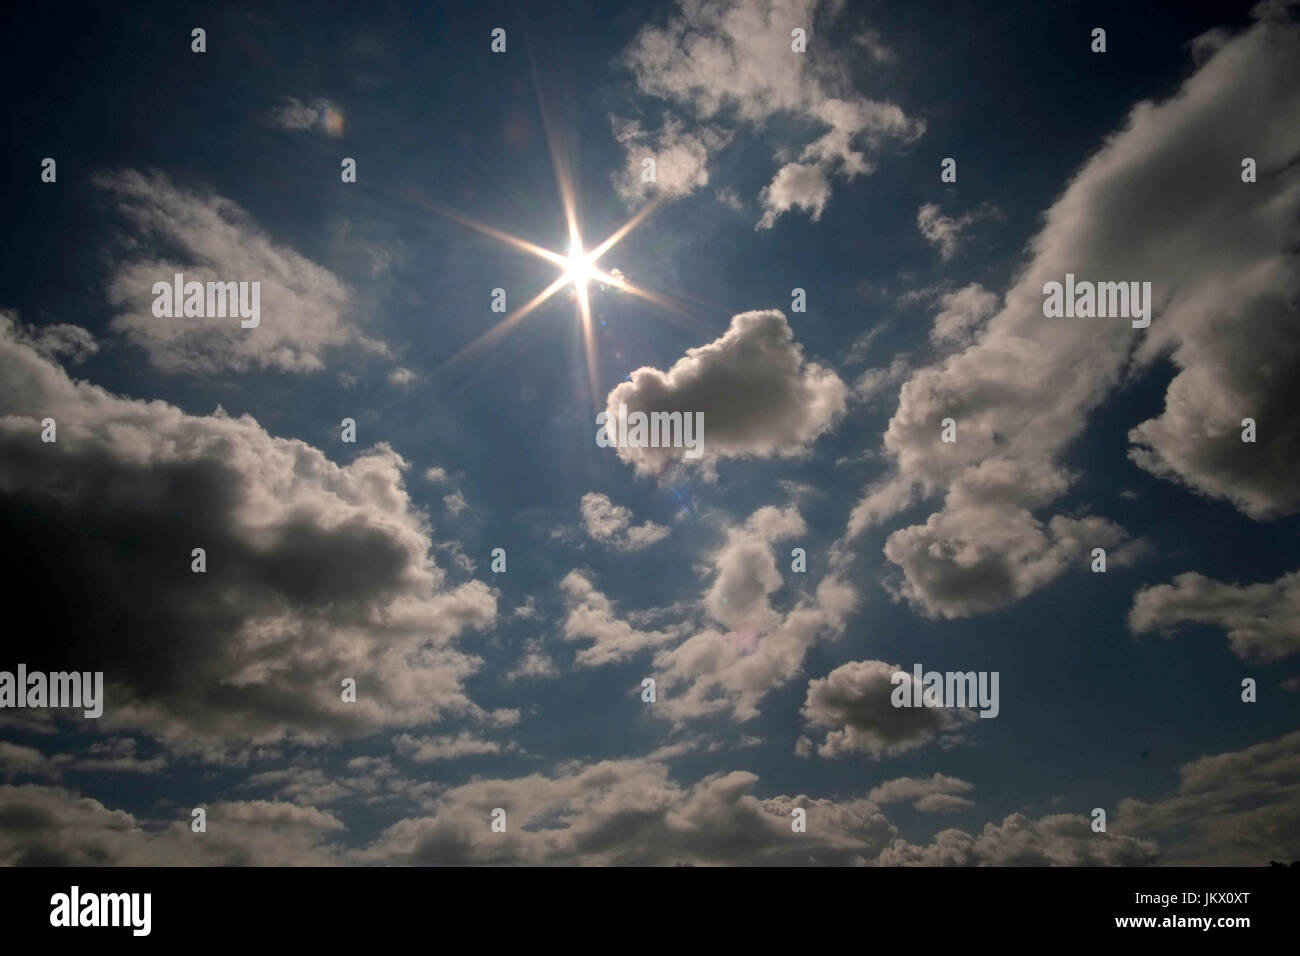 A blue sky with white clouds and a sun starburst. - Stock Image